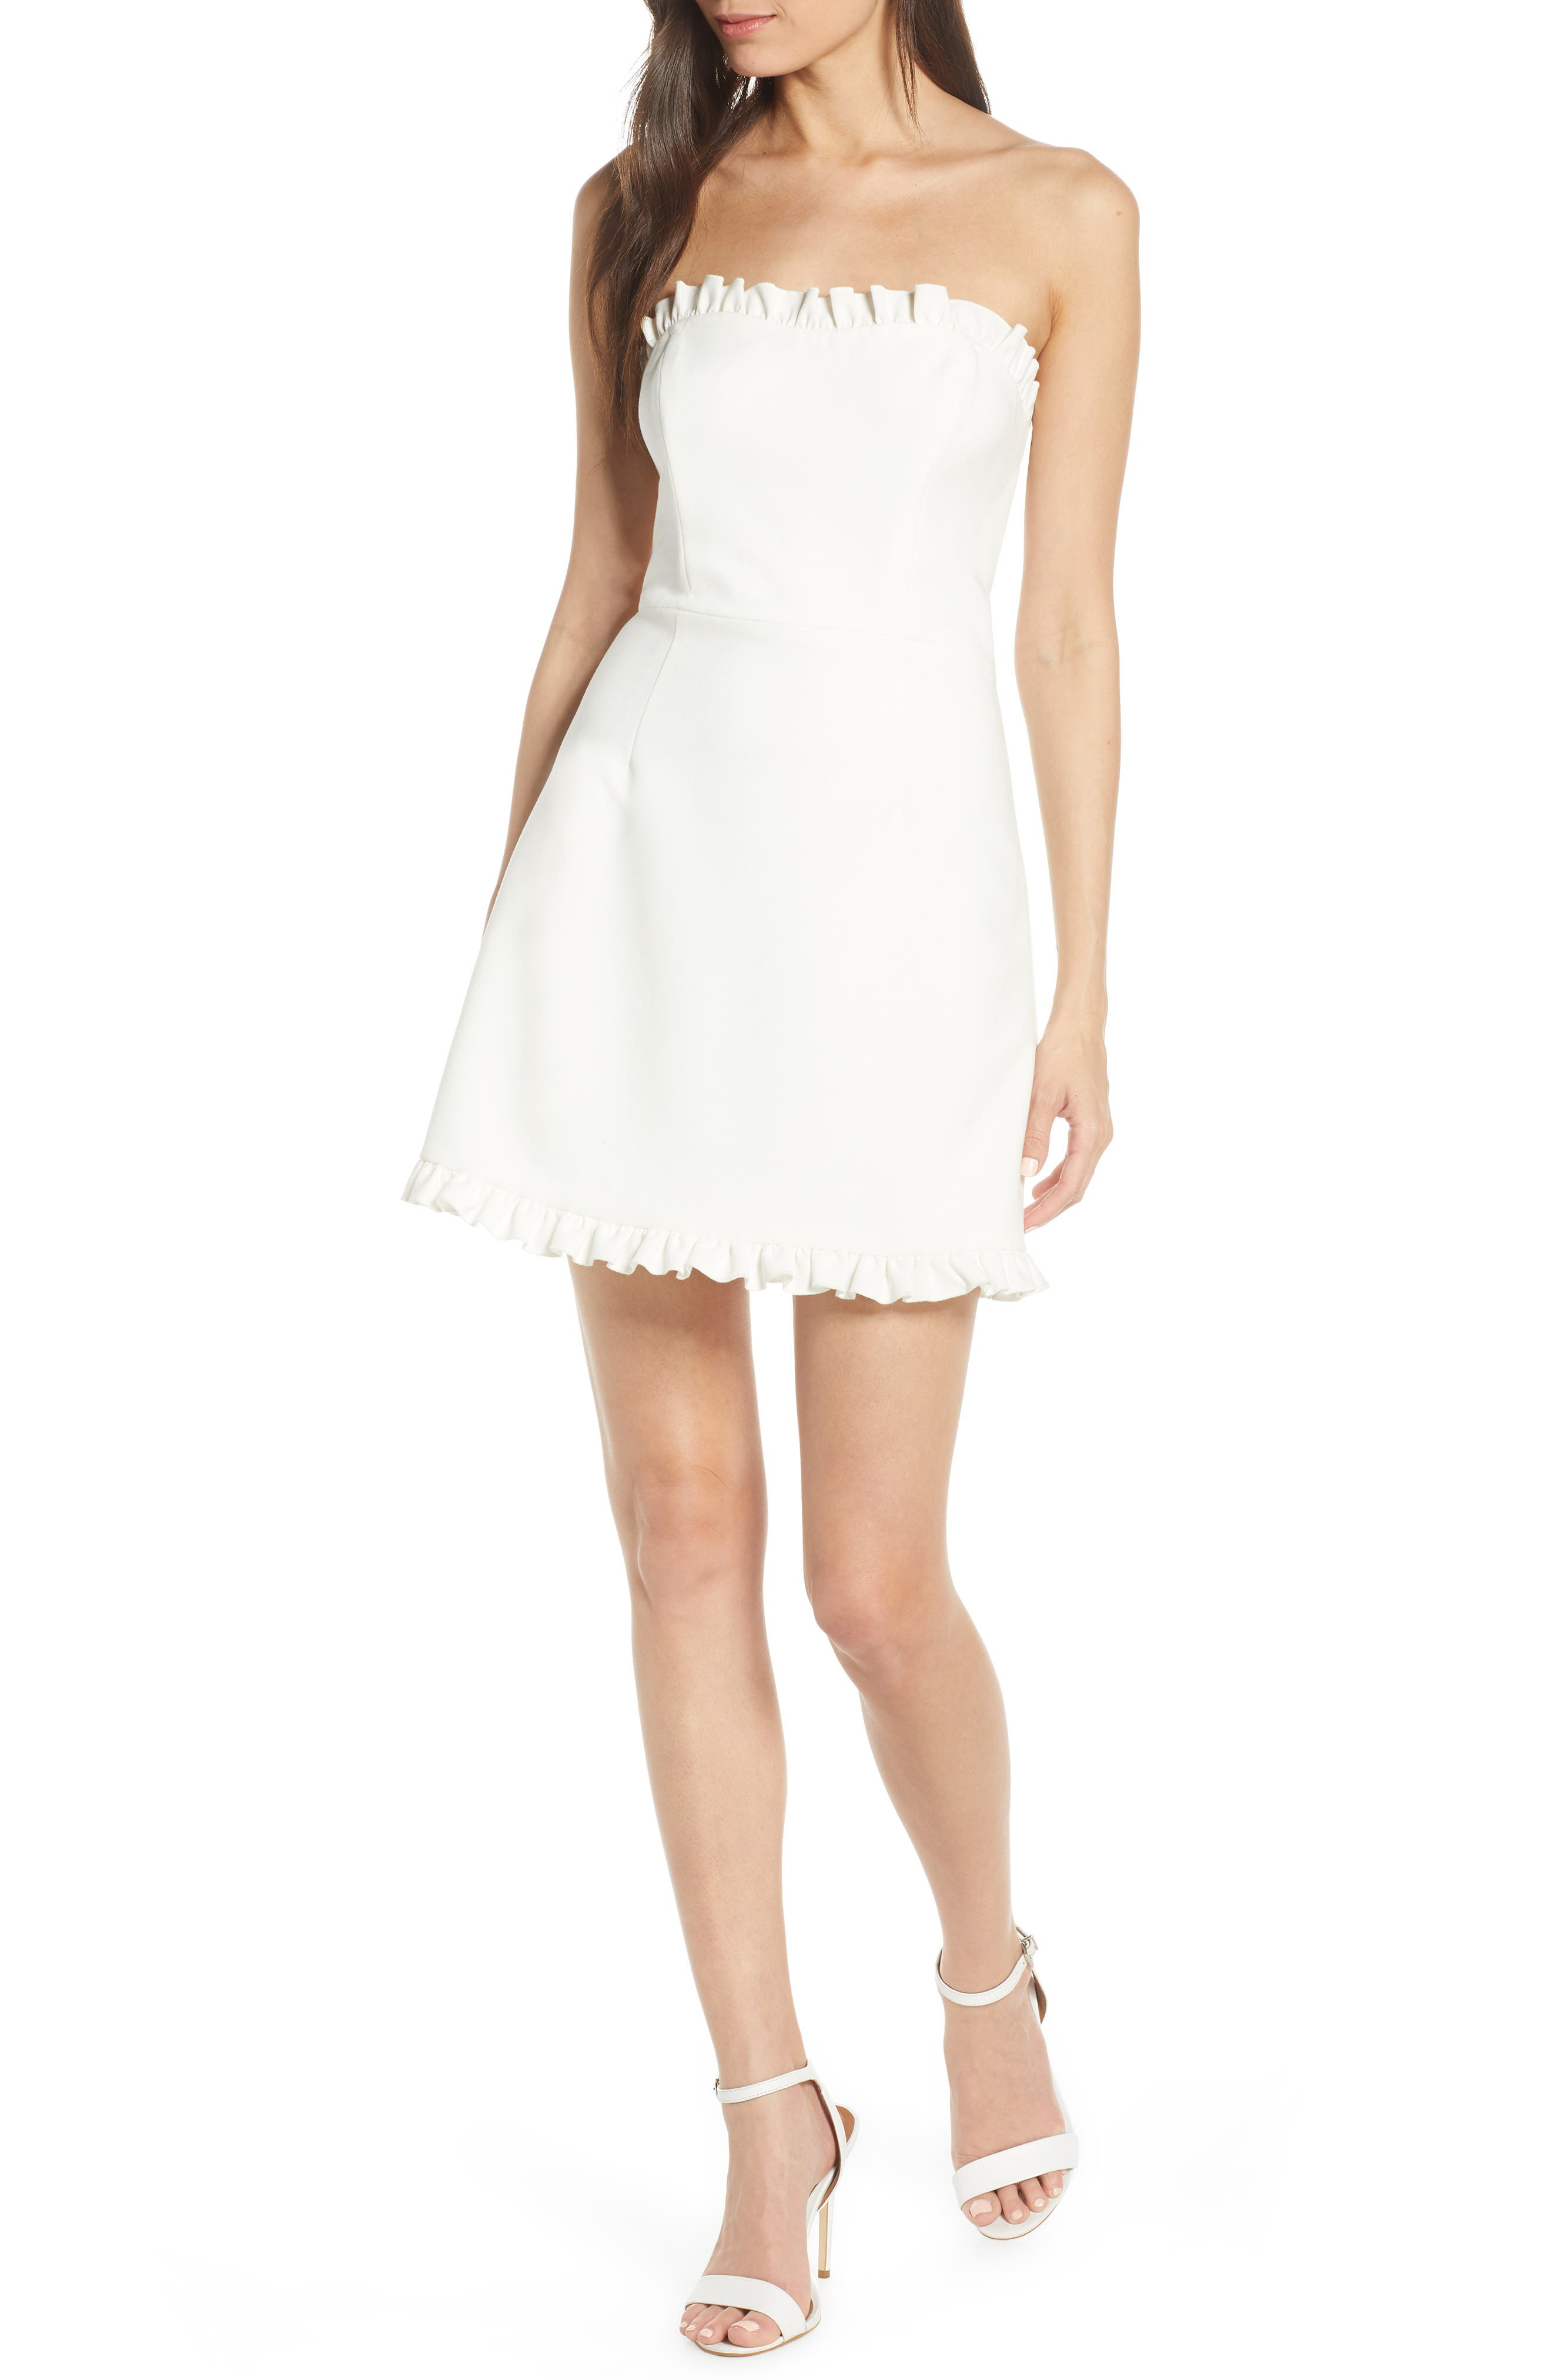 French Connection Whisper Convertible Strap Dress, White